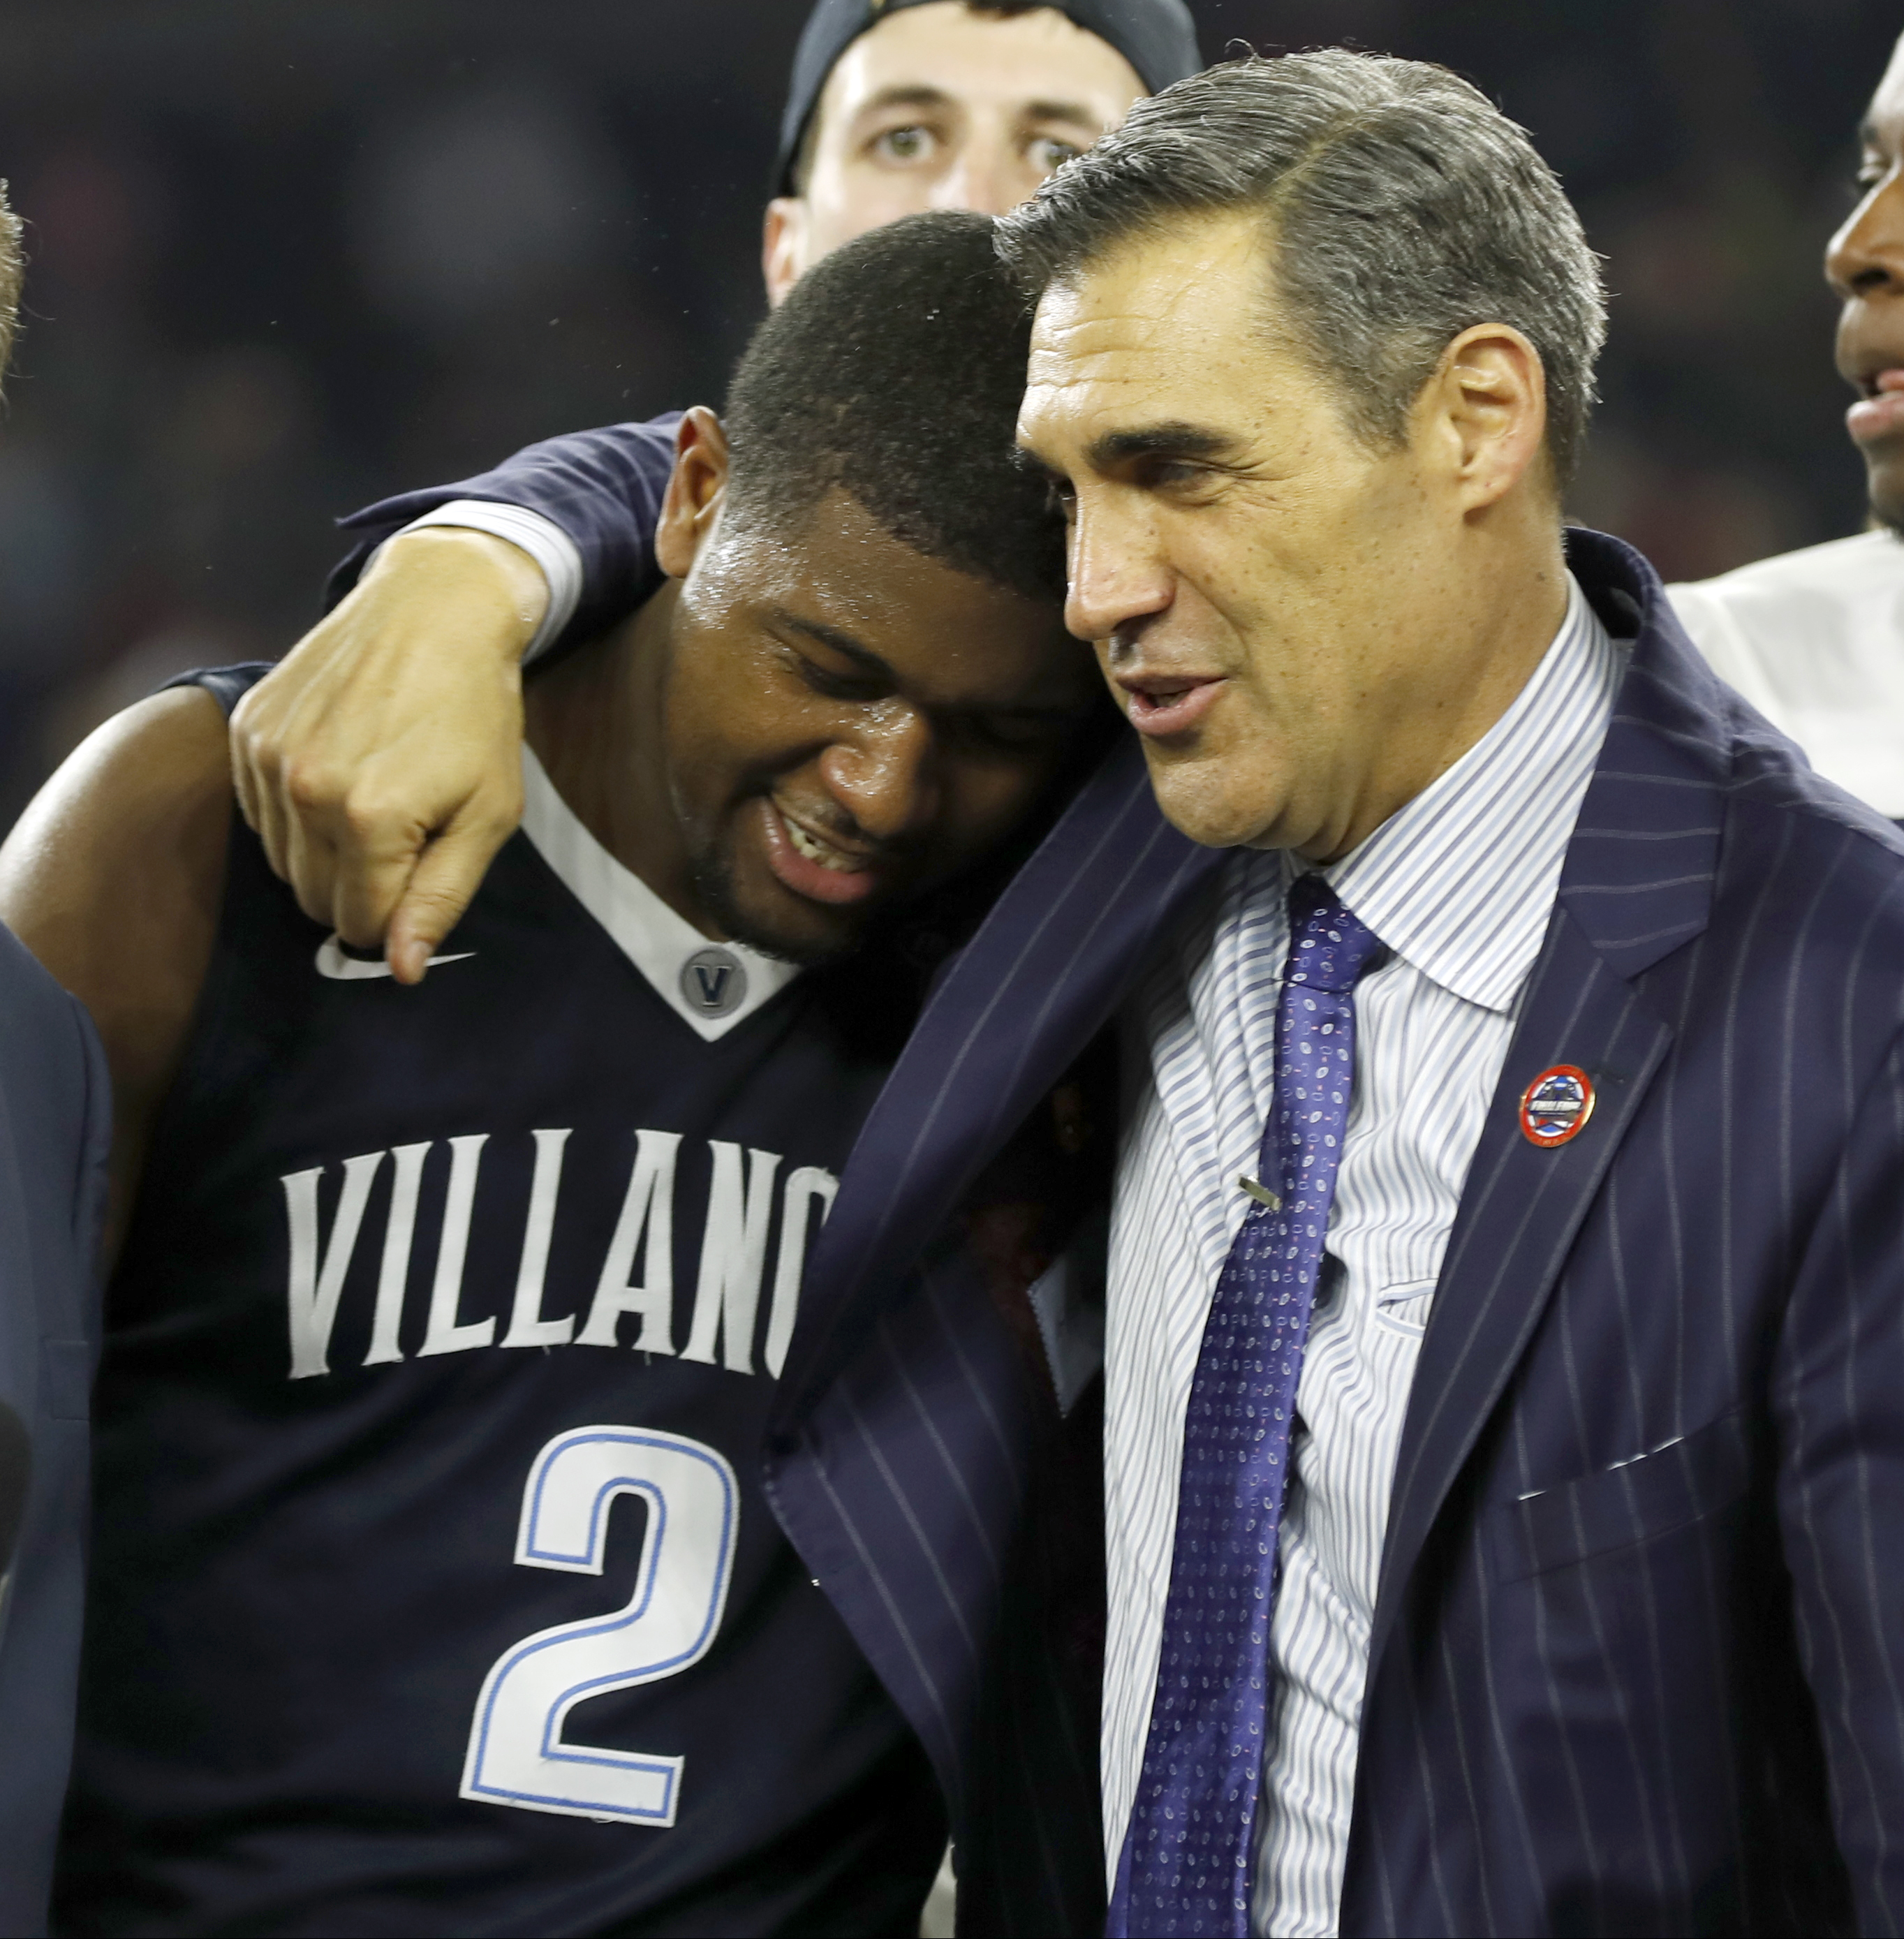 Villanova head coach Jay Wright, right, embraces Kris Jenkins after Jenkins scored a game winning three point basket in the closing seconds of the NCAA Final Four tournament college basketball championship game against North Carolina, Monday, April 4, 201